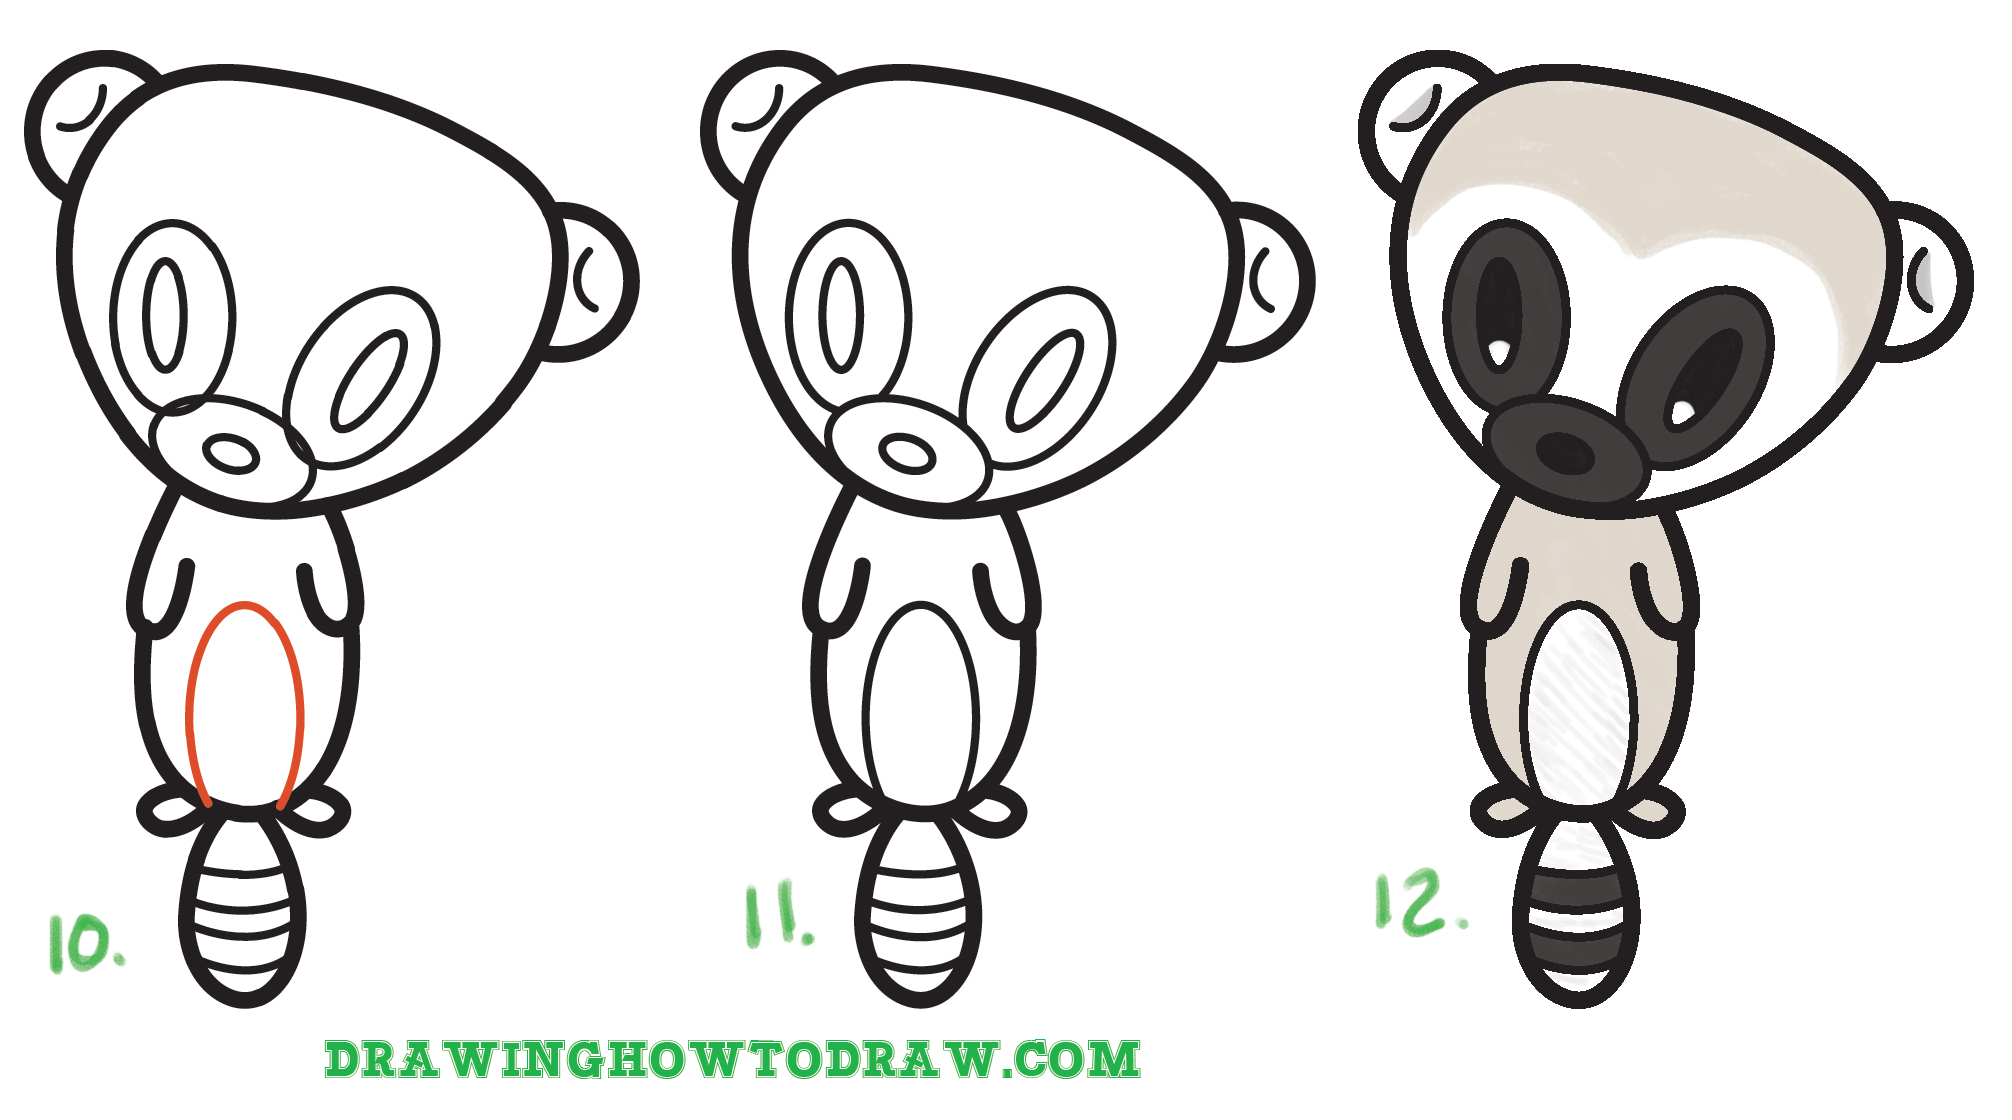 How to Draw a Super Cute Cartoon Lemur Simple Steps Drawing Lesson for Children